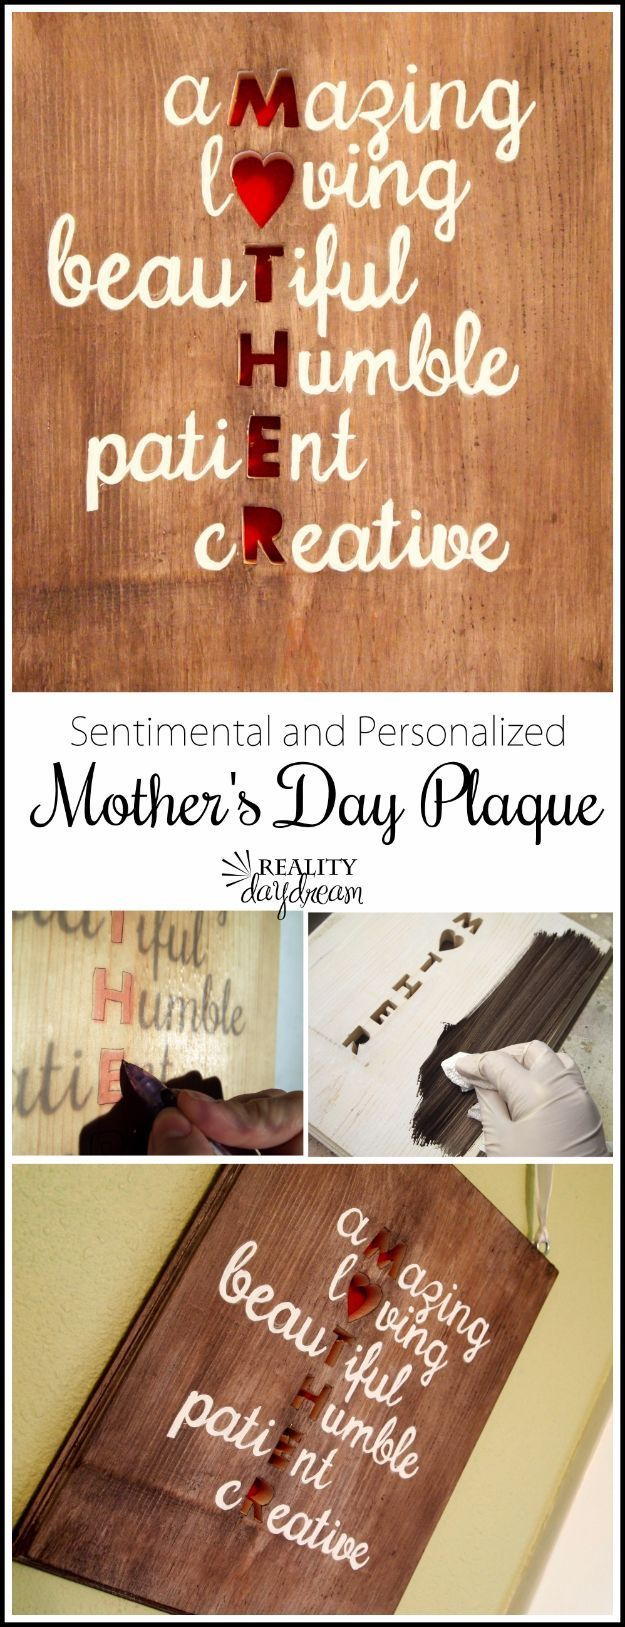 35 Creatively Thoughtful DIY Mother's Day Gifts | Diy ...